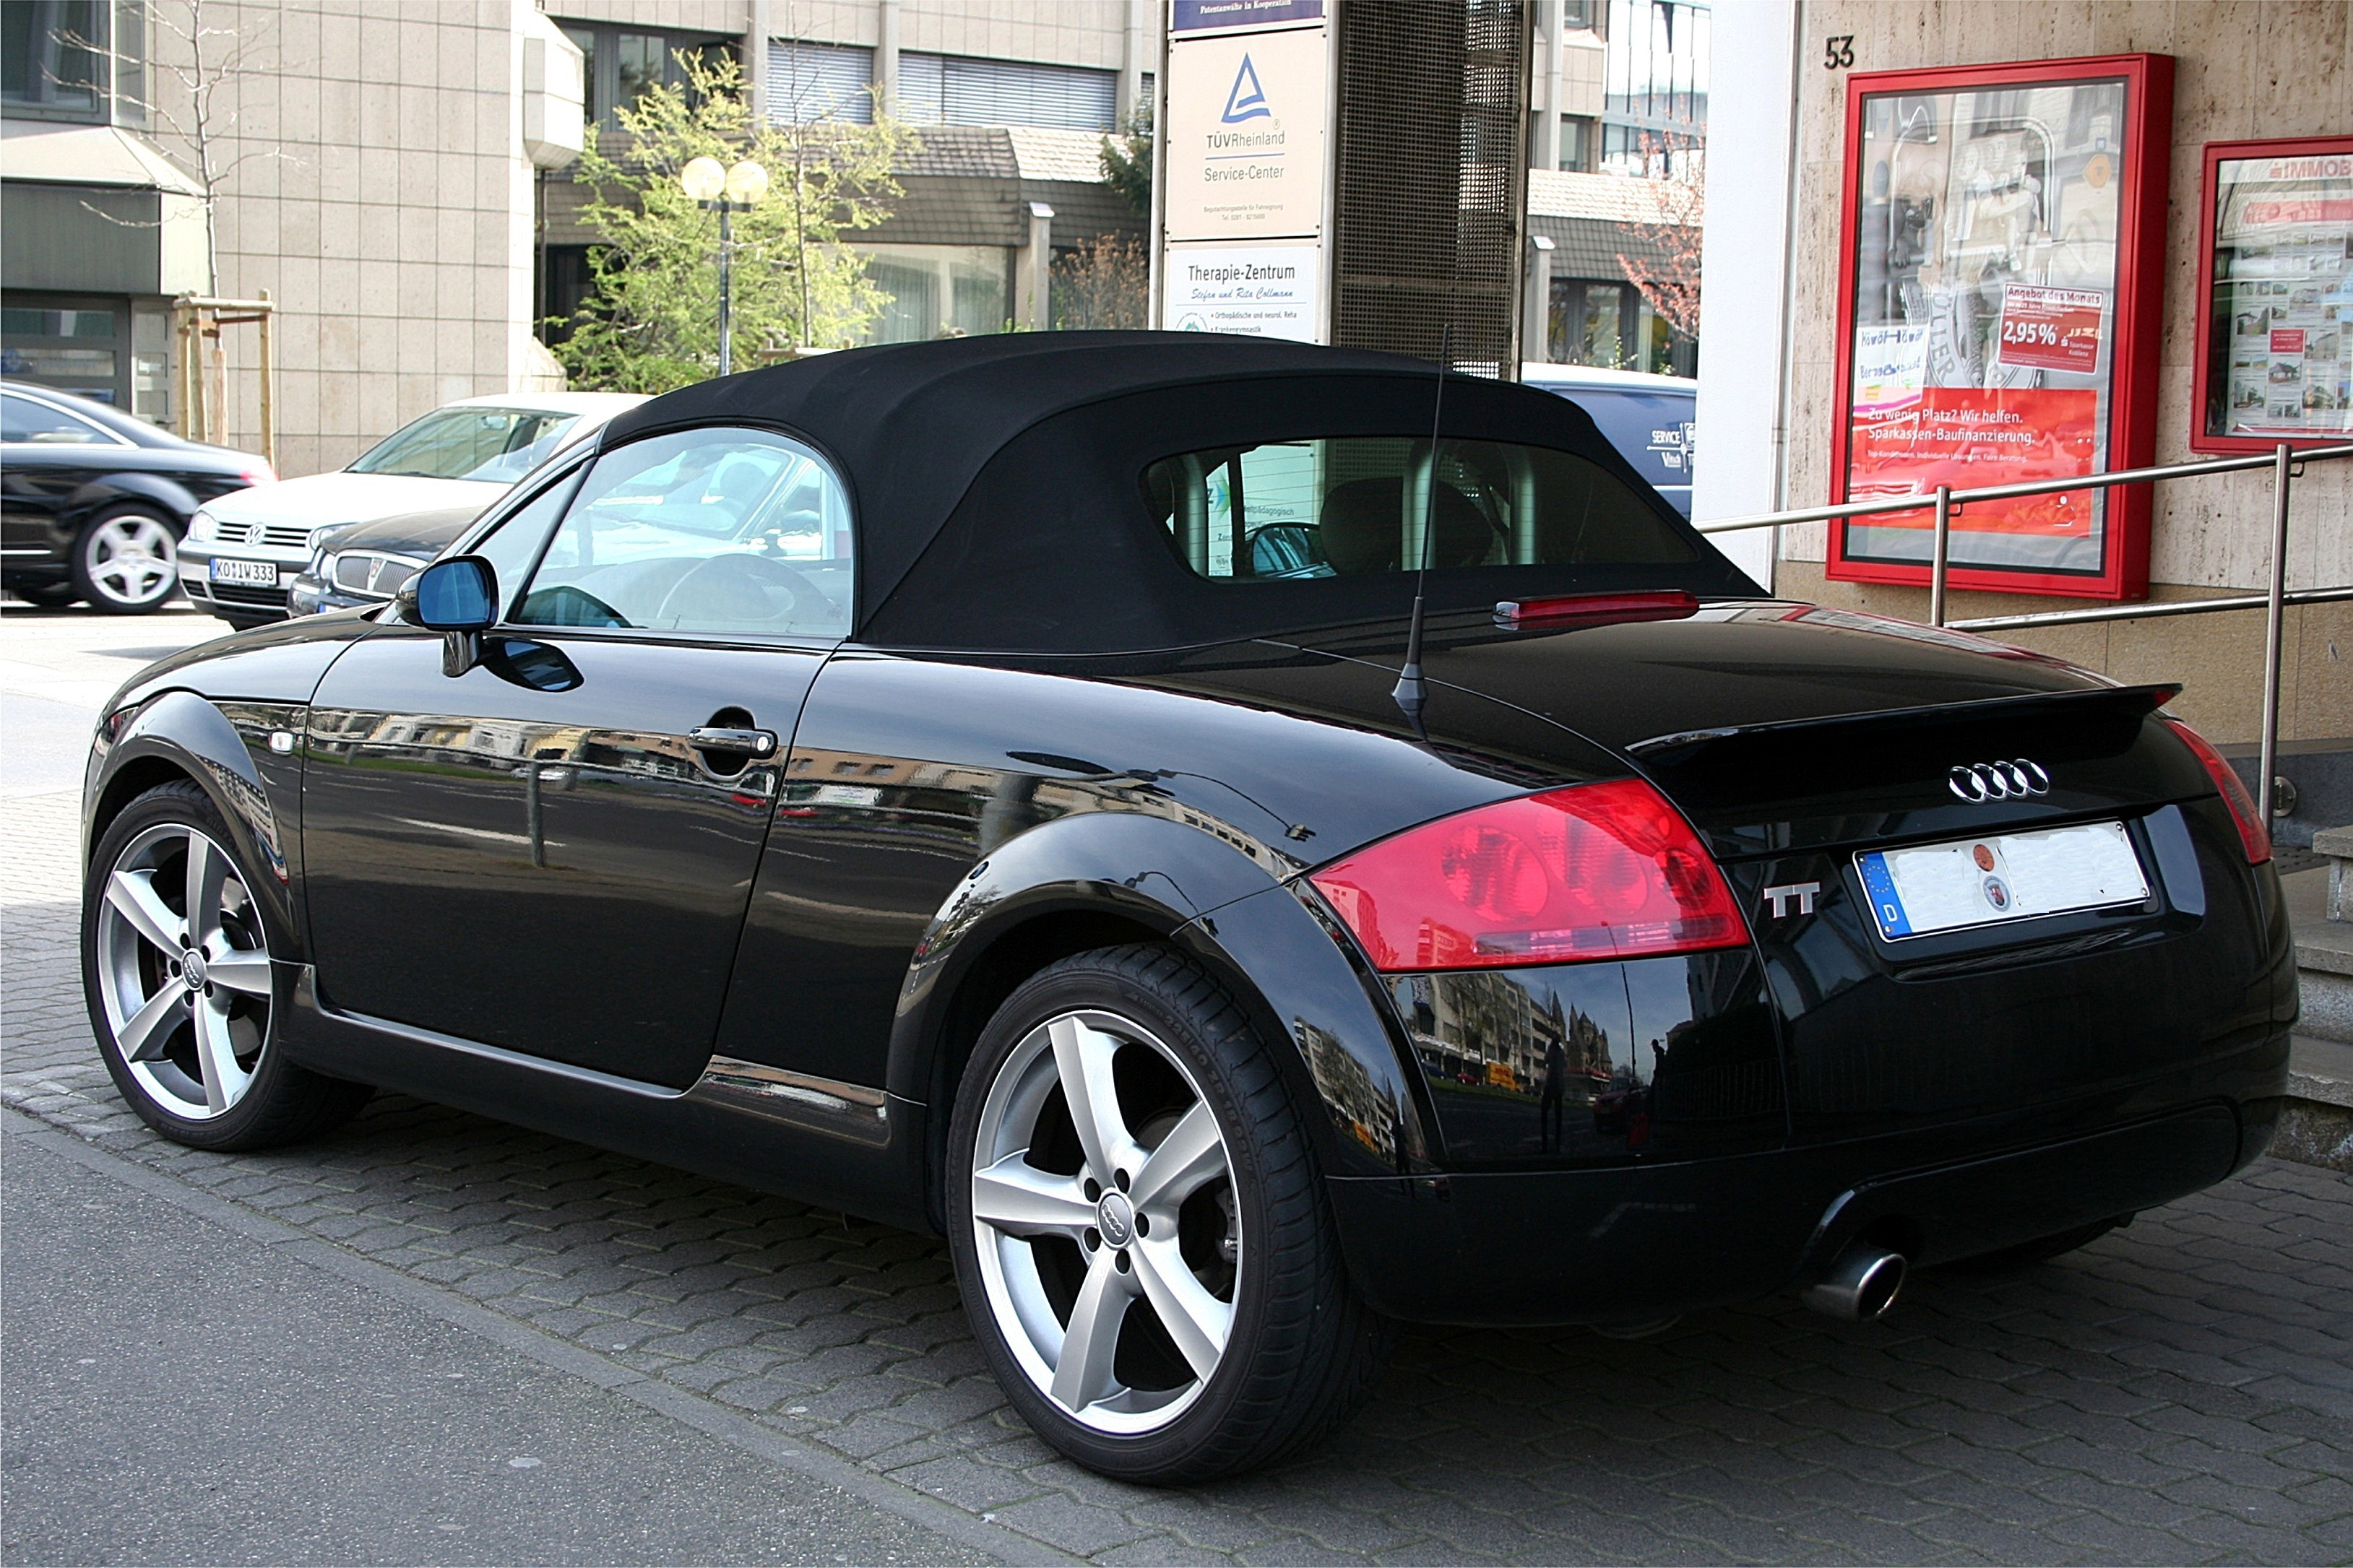 file 2007 04 05 04 audi tt cabrio retusch jpg wikimedia commons. Black Bedroom Furniture Sets. Home Design Ideas